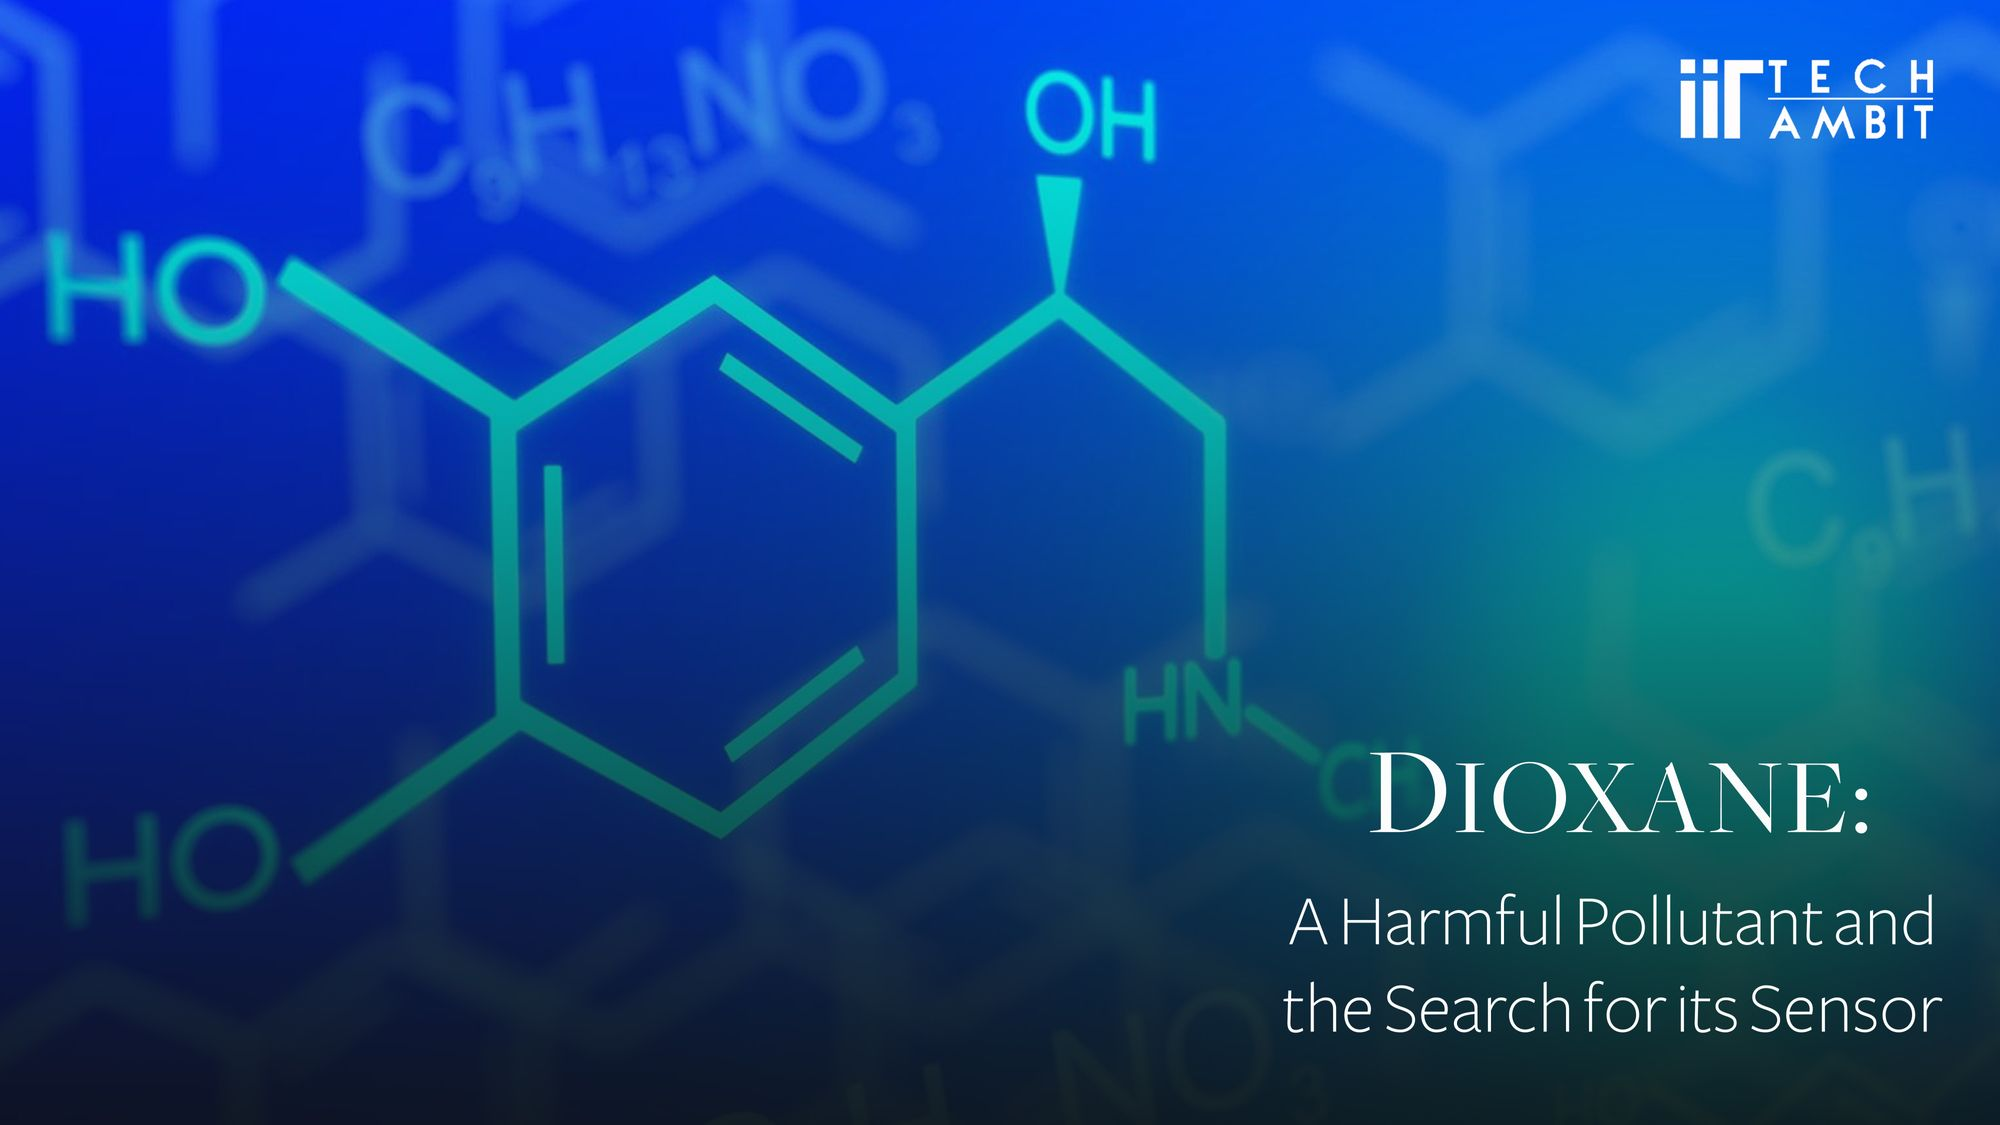 Dioxane: A Harmful Pollutant and the Search for its Sensor